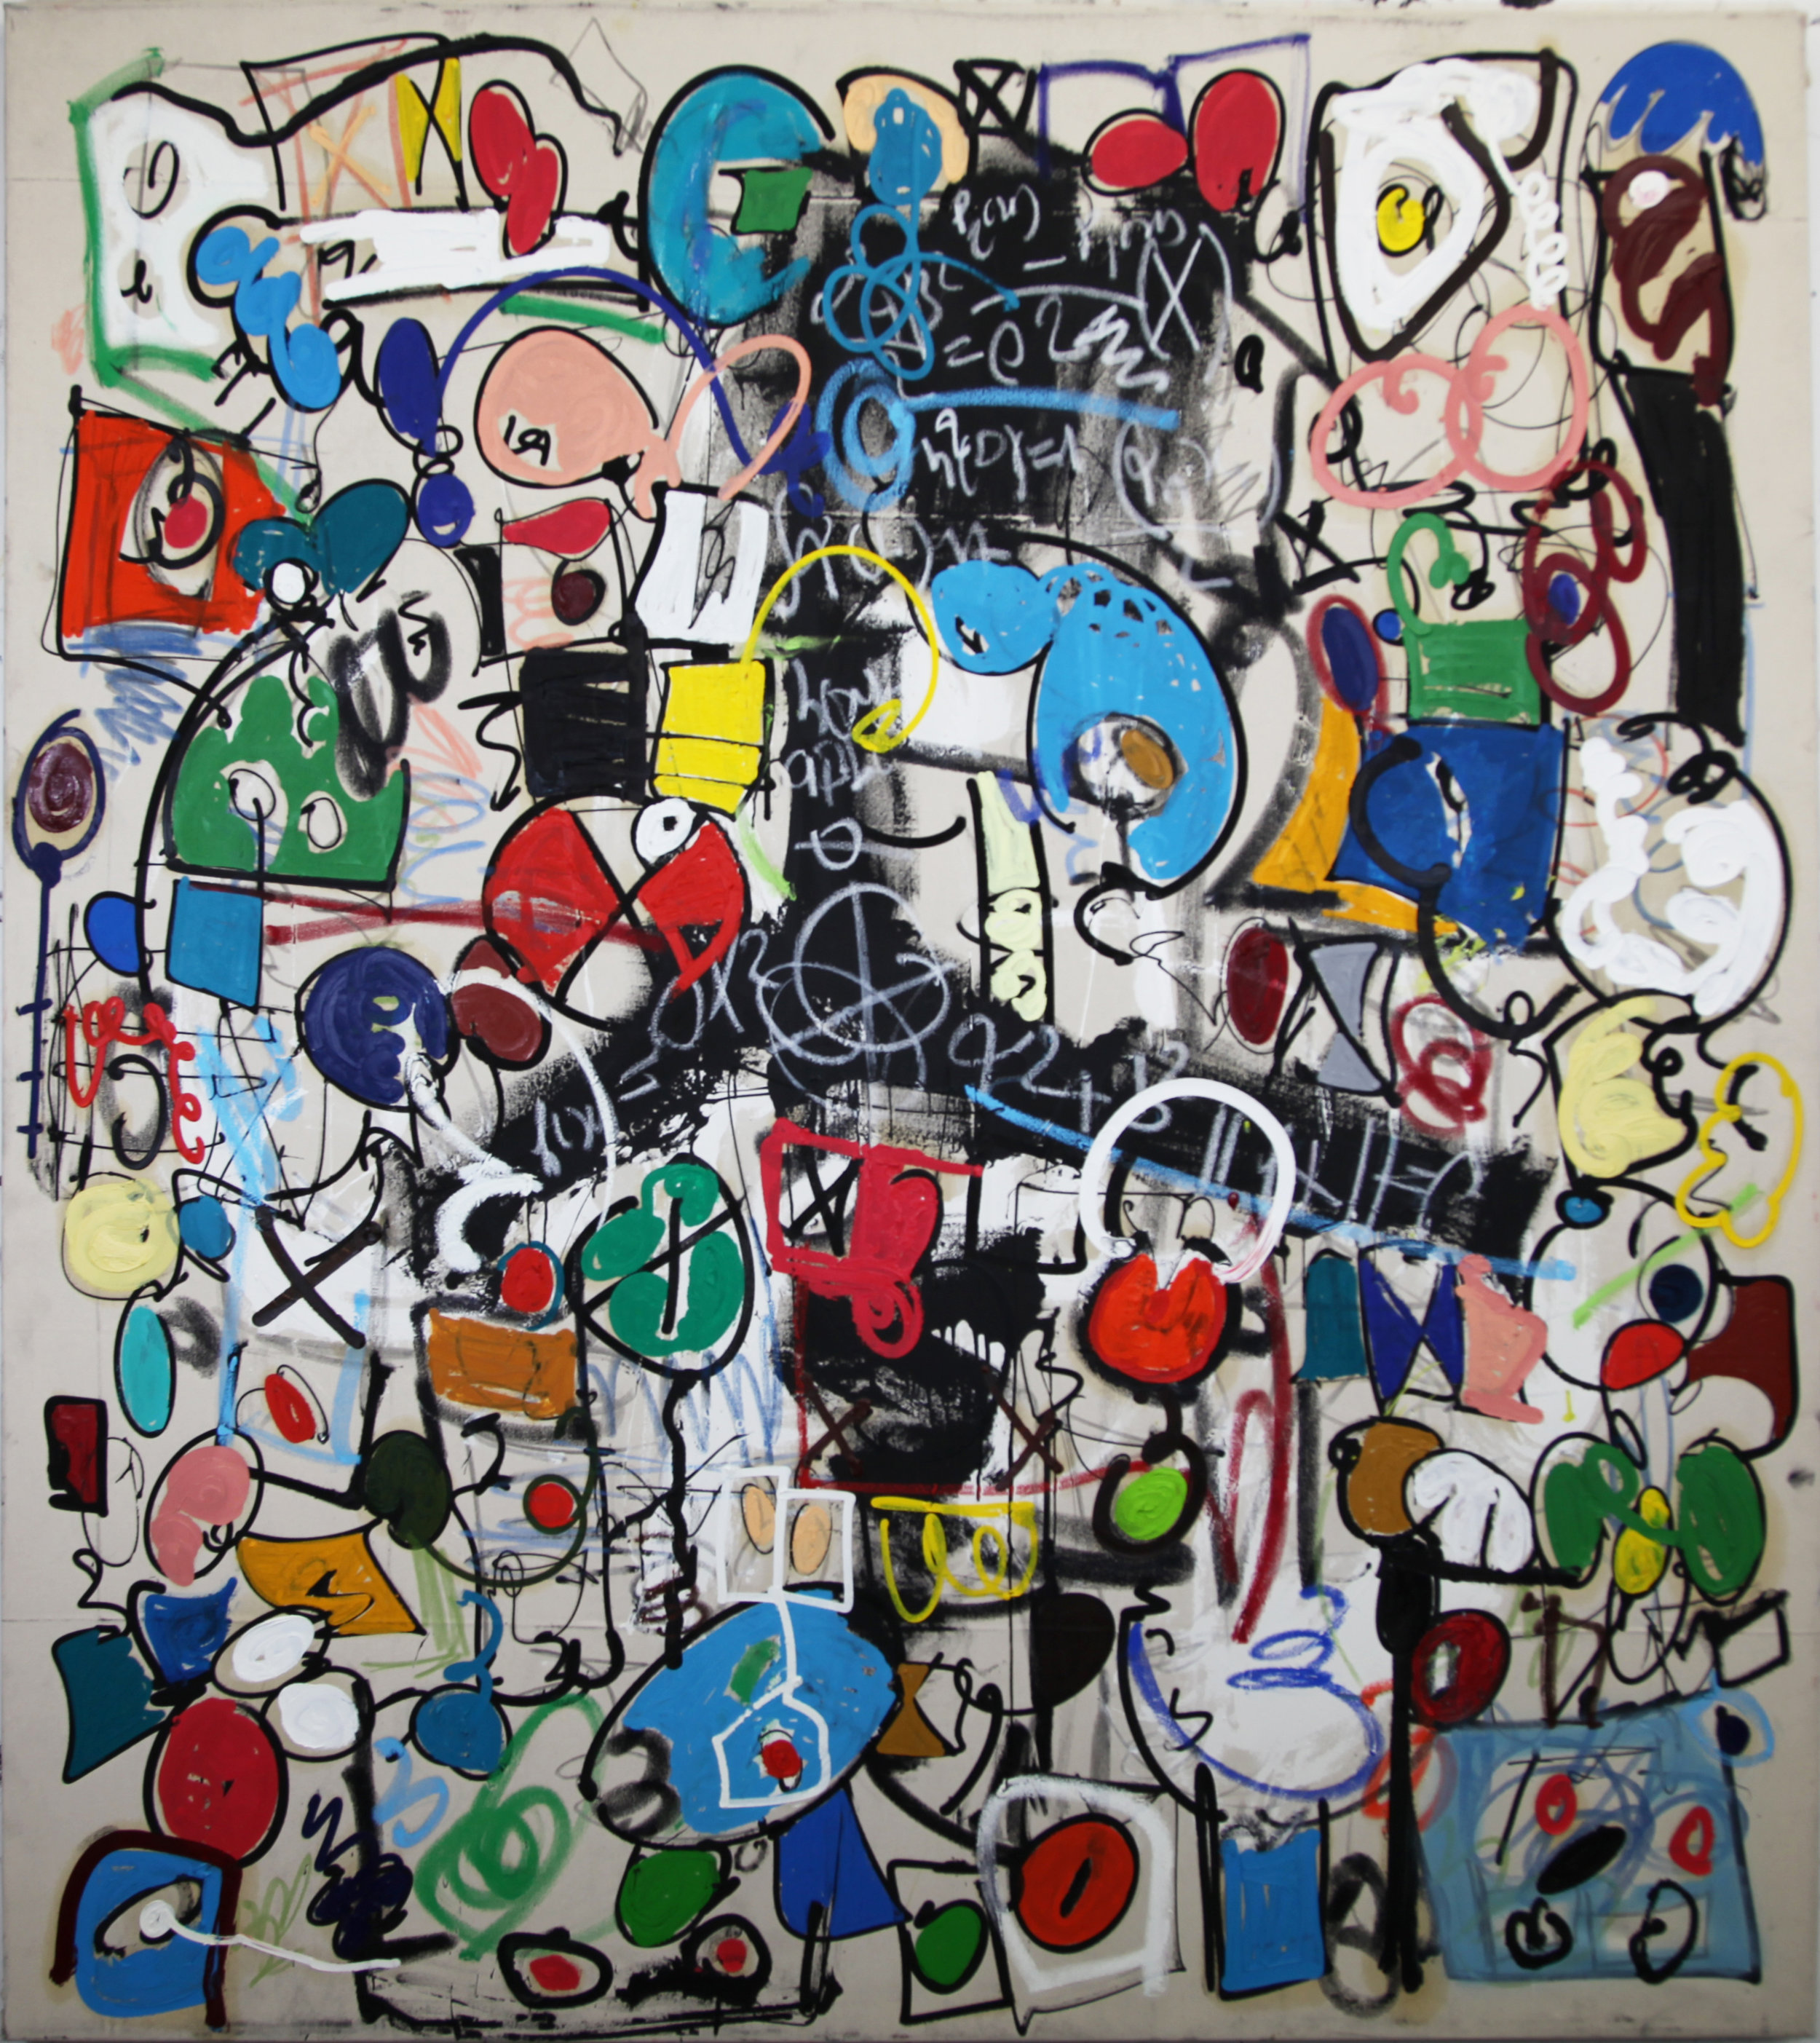 428 The Stones Are Overrated  Oil, acrylic, silkscreen ink, enamel, charcoal on canvas